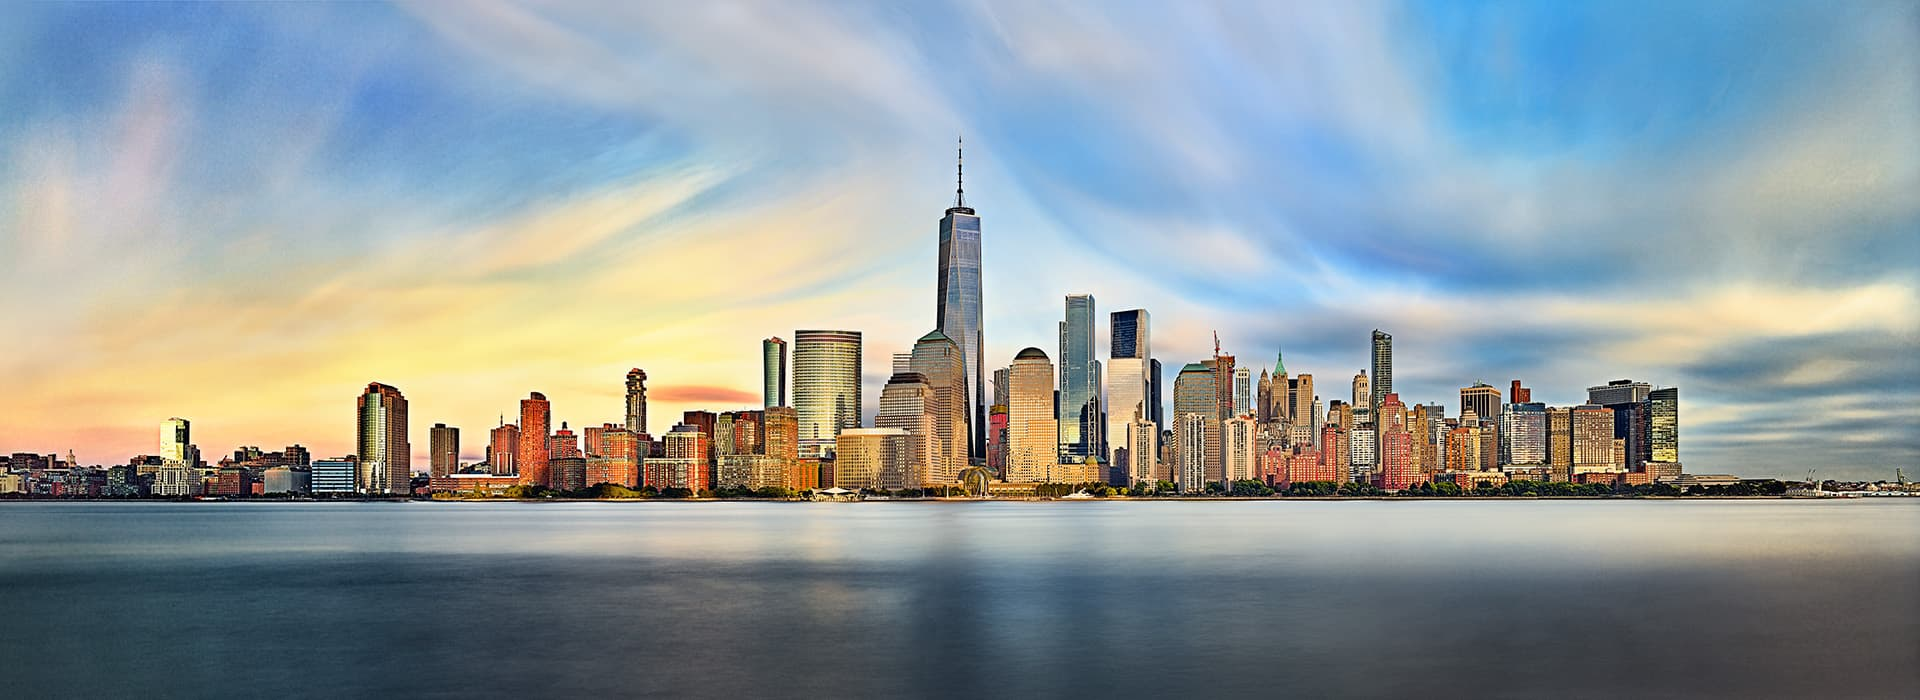 Copyrighted-NYC-Skyline-from-Jersey-City-NJ-photographed-by-Bob-Graham-Jr-Ambler-PA-19002-processed-13-Nov-2018